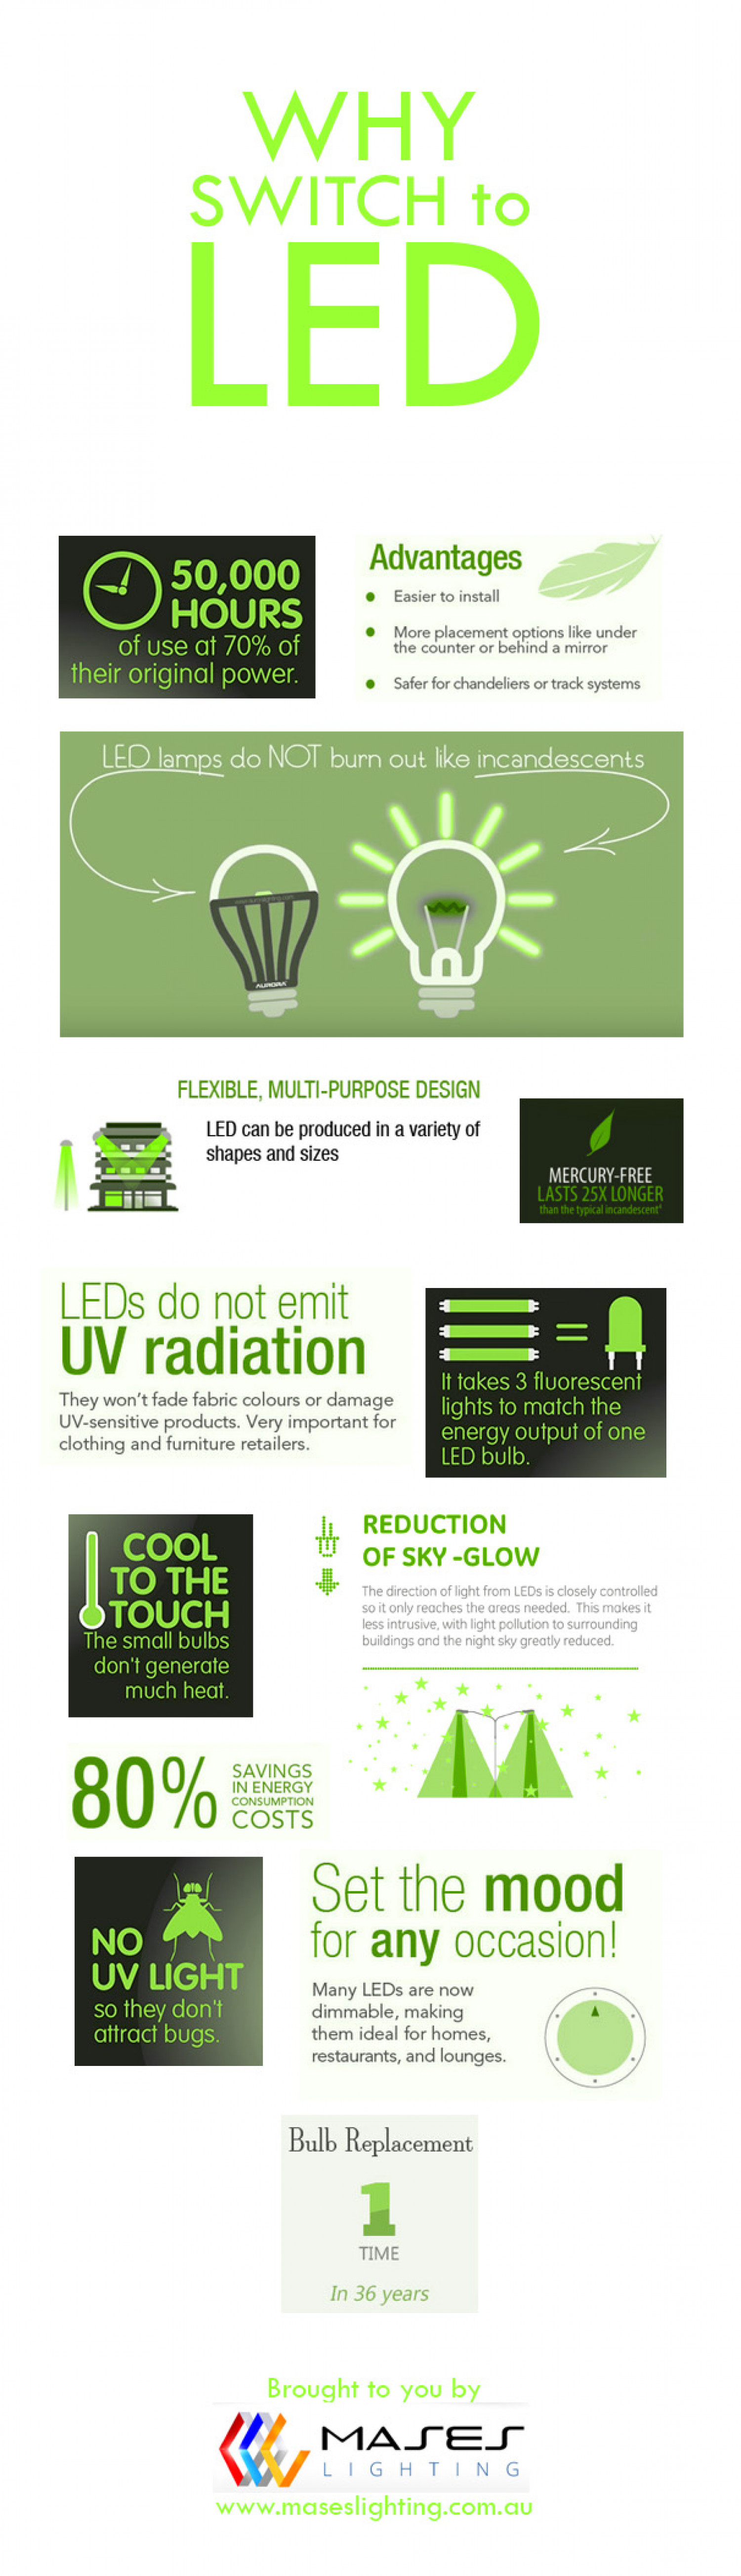 Why Switch to LED? Infographic